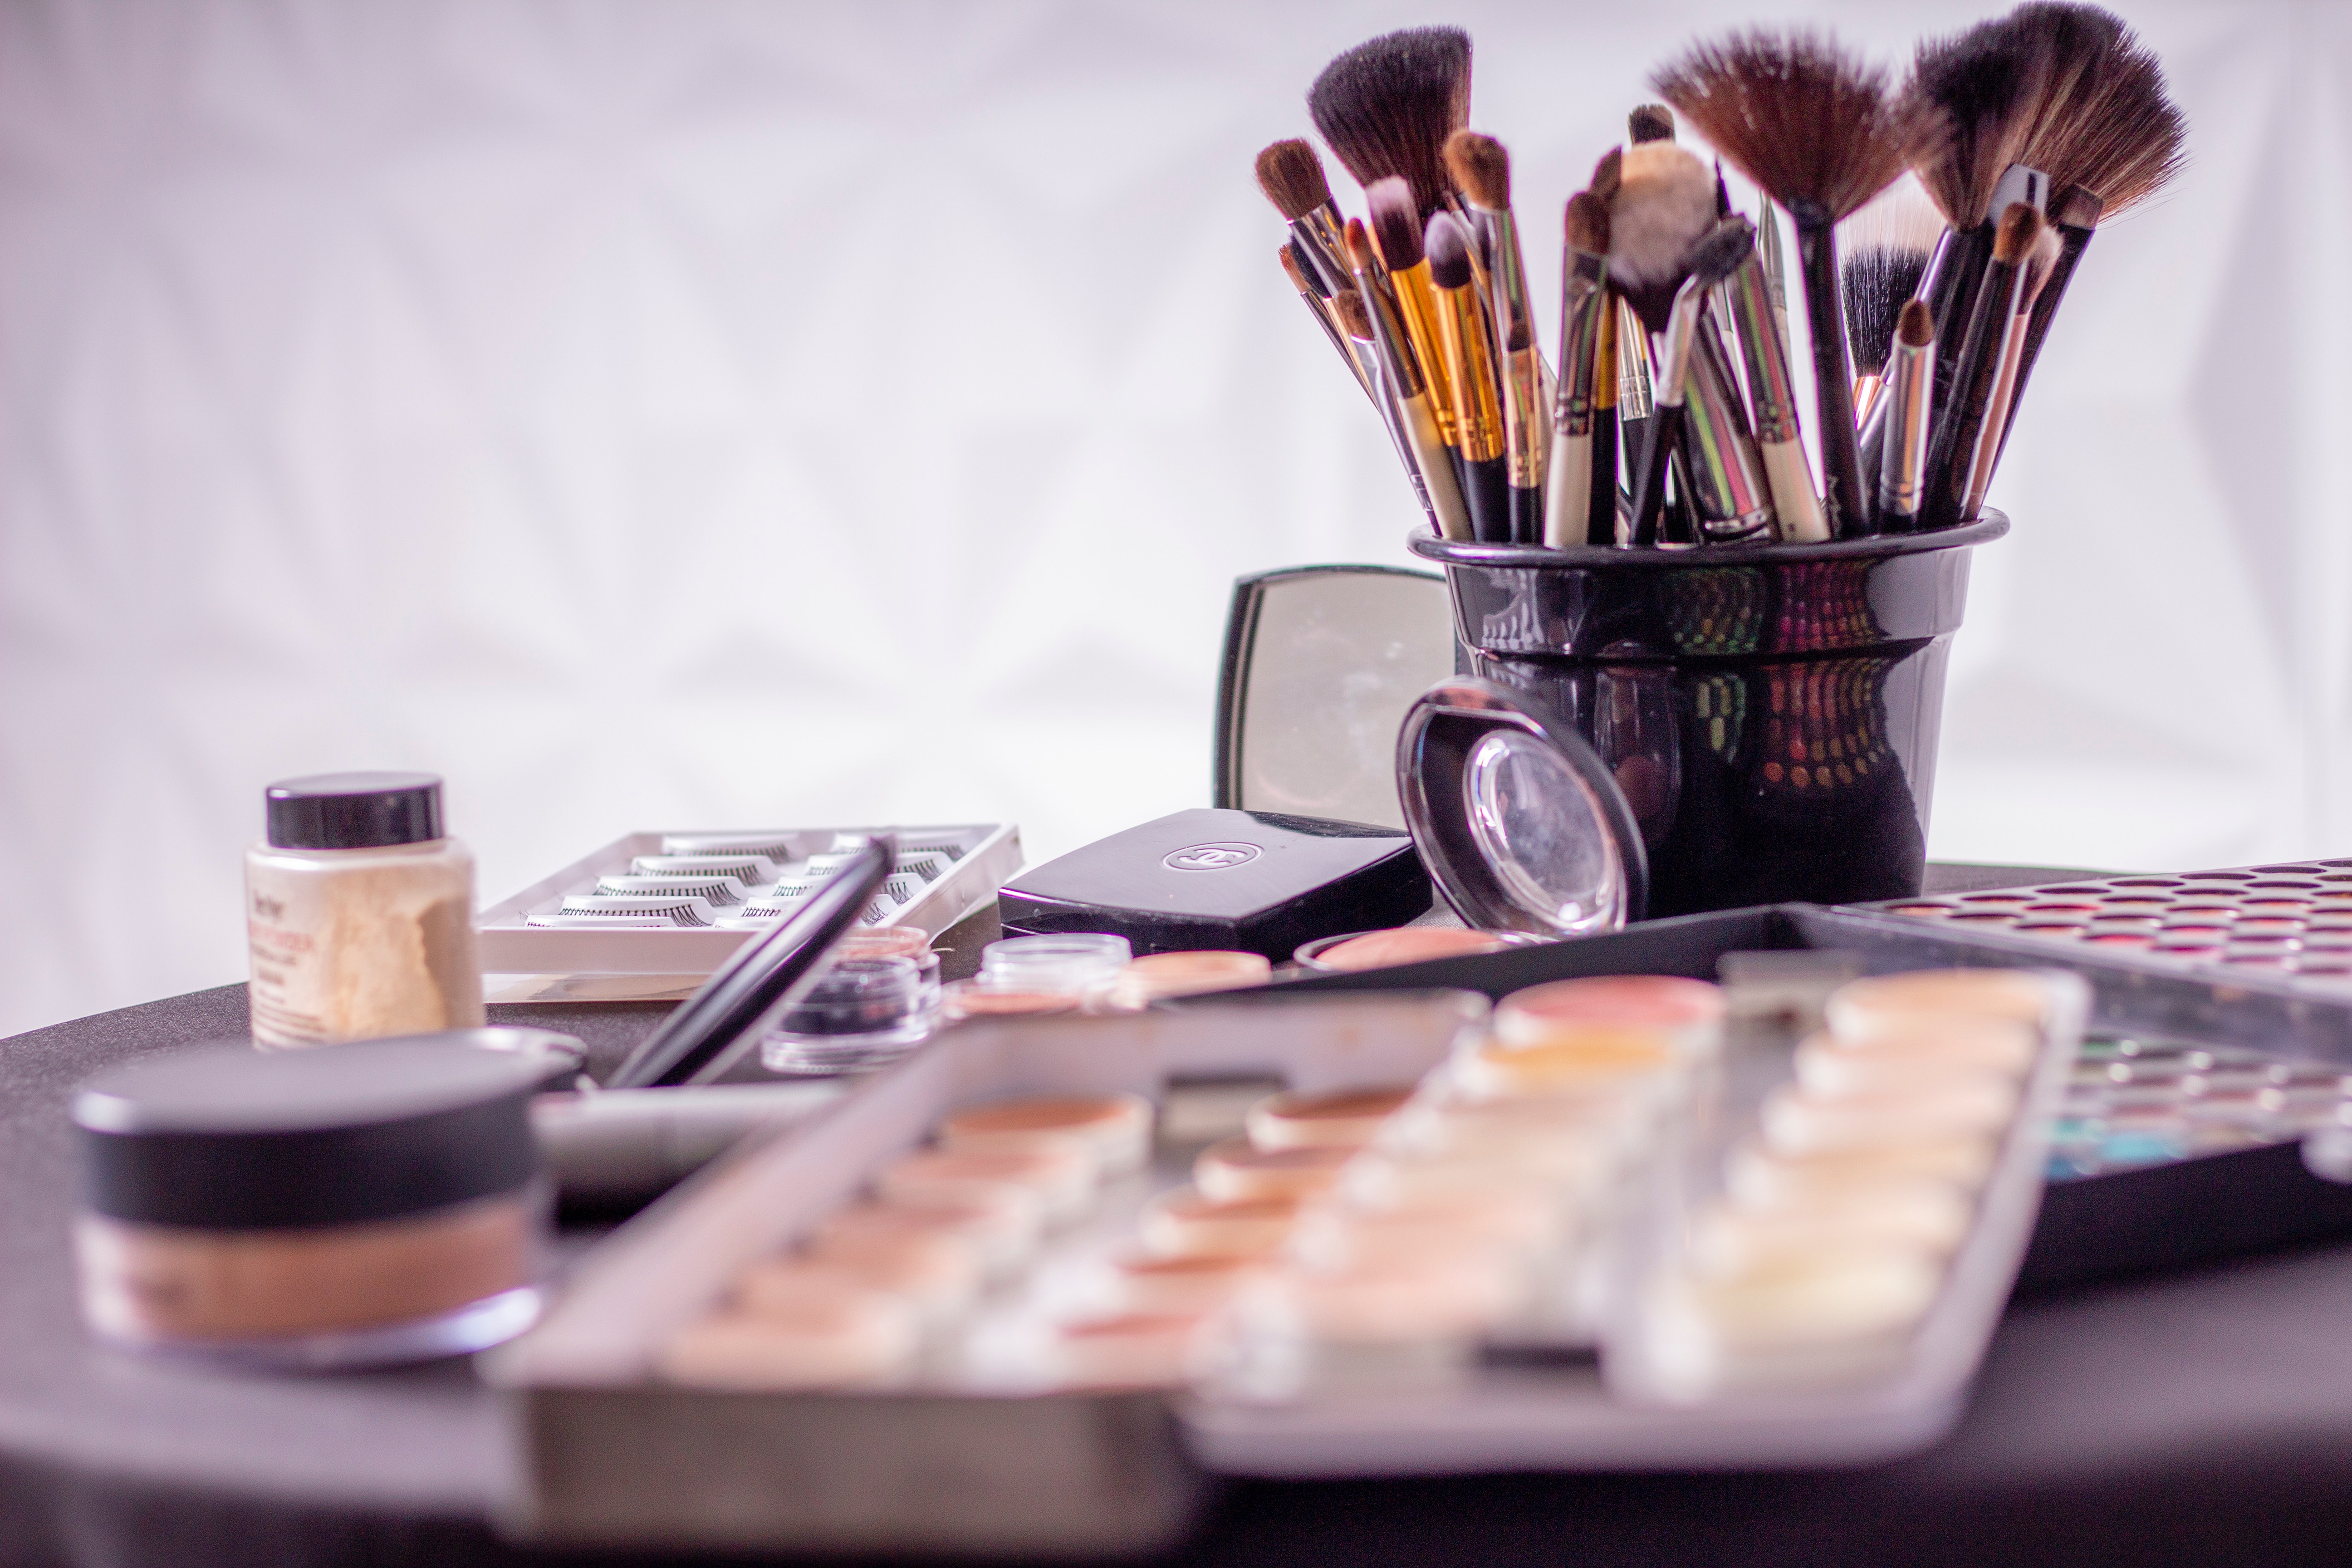 how to tell if makeup is expired or not? A picture of random Makeup and brushes